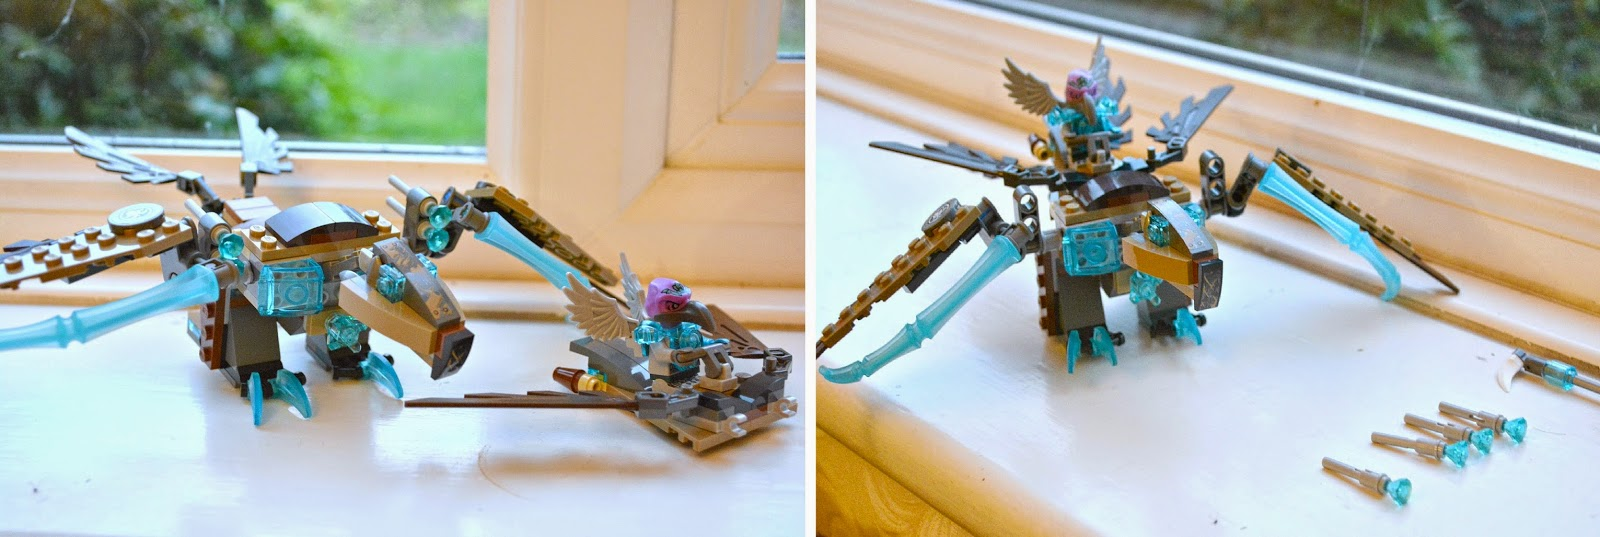 LEGO Family Blogger, LEGO CHIMA Vardy's Ice Vulture Glider, kid's review